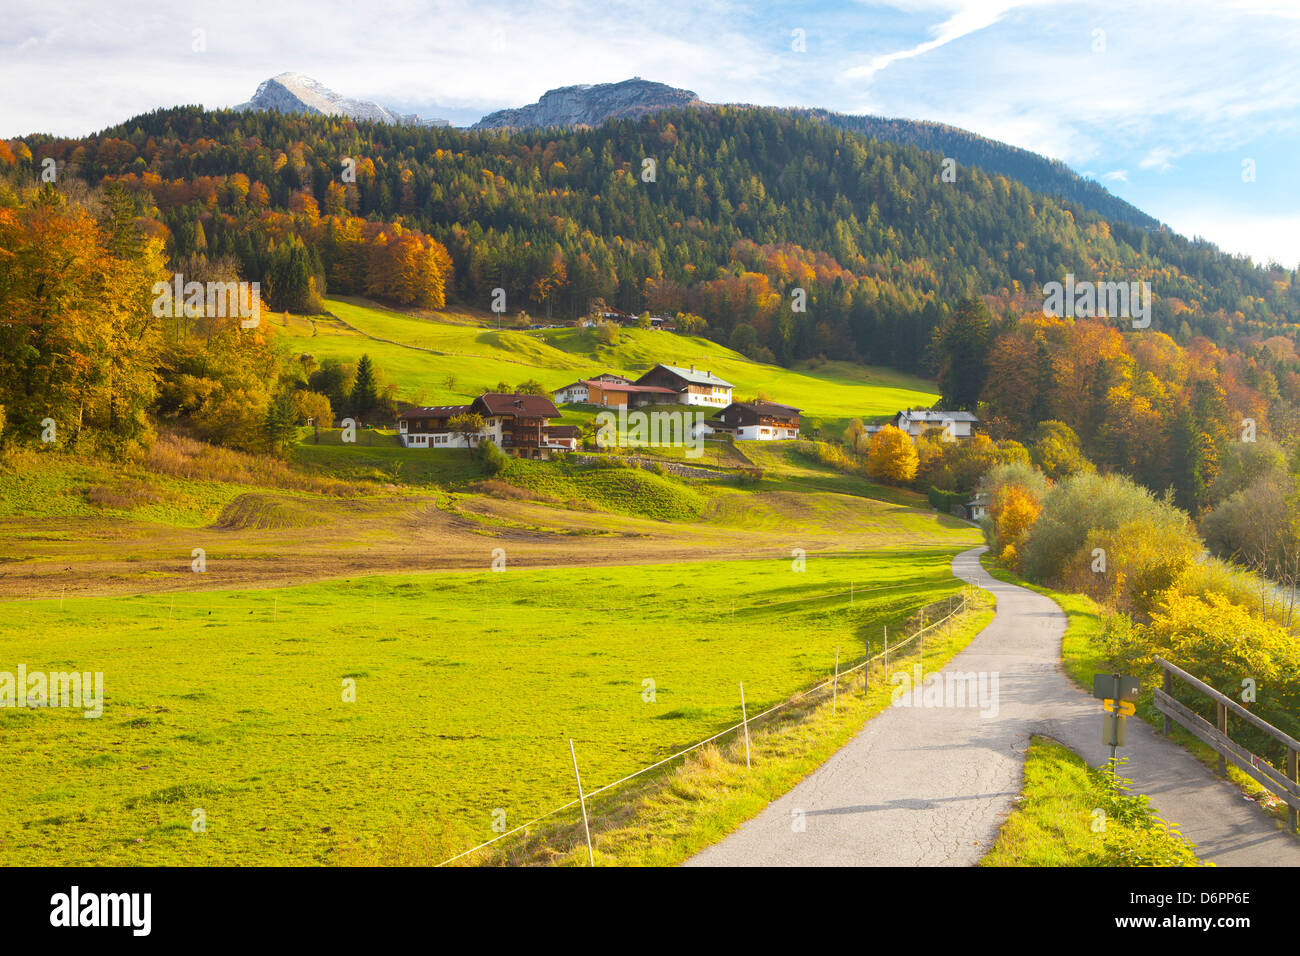 Bicycle path through rural mountain landscape in autumn, near Berchtesgaden, Bavaria, Germany, Europe - Stock Image